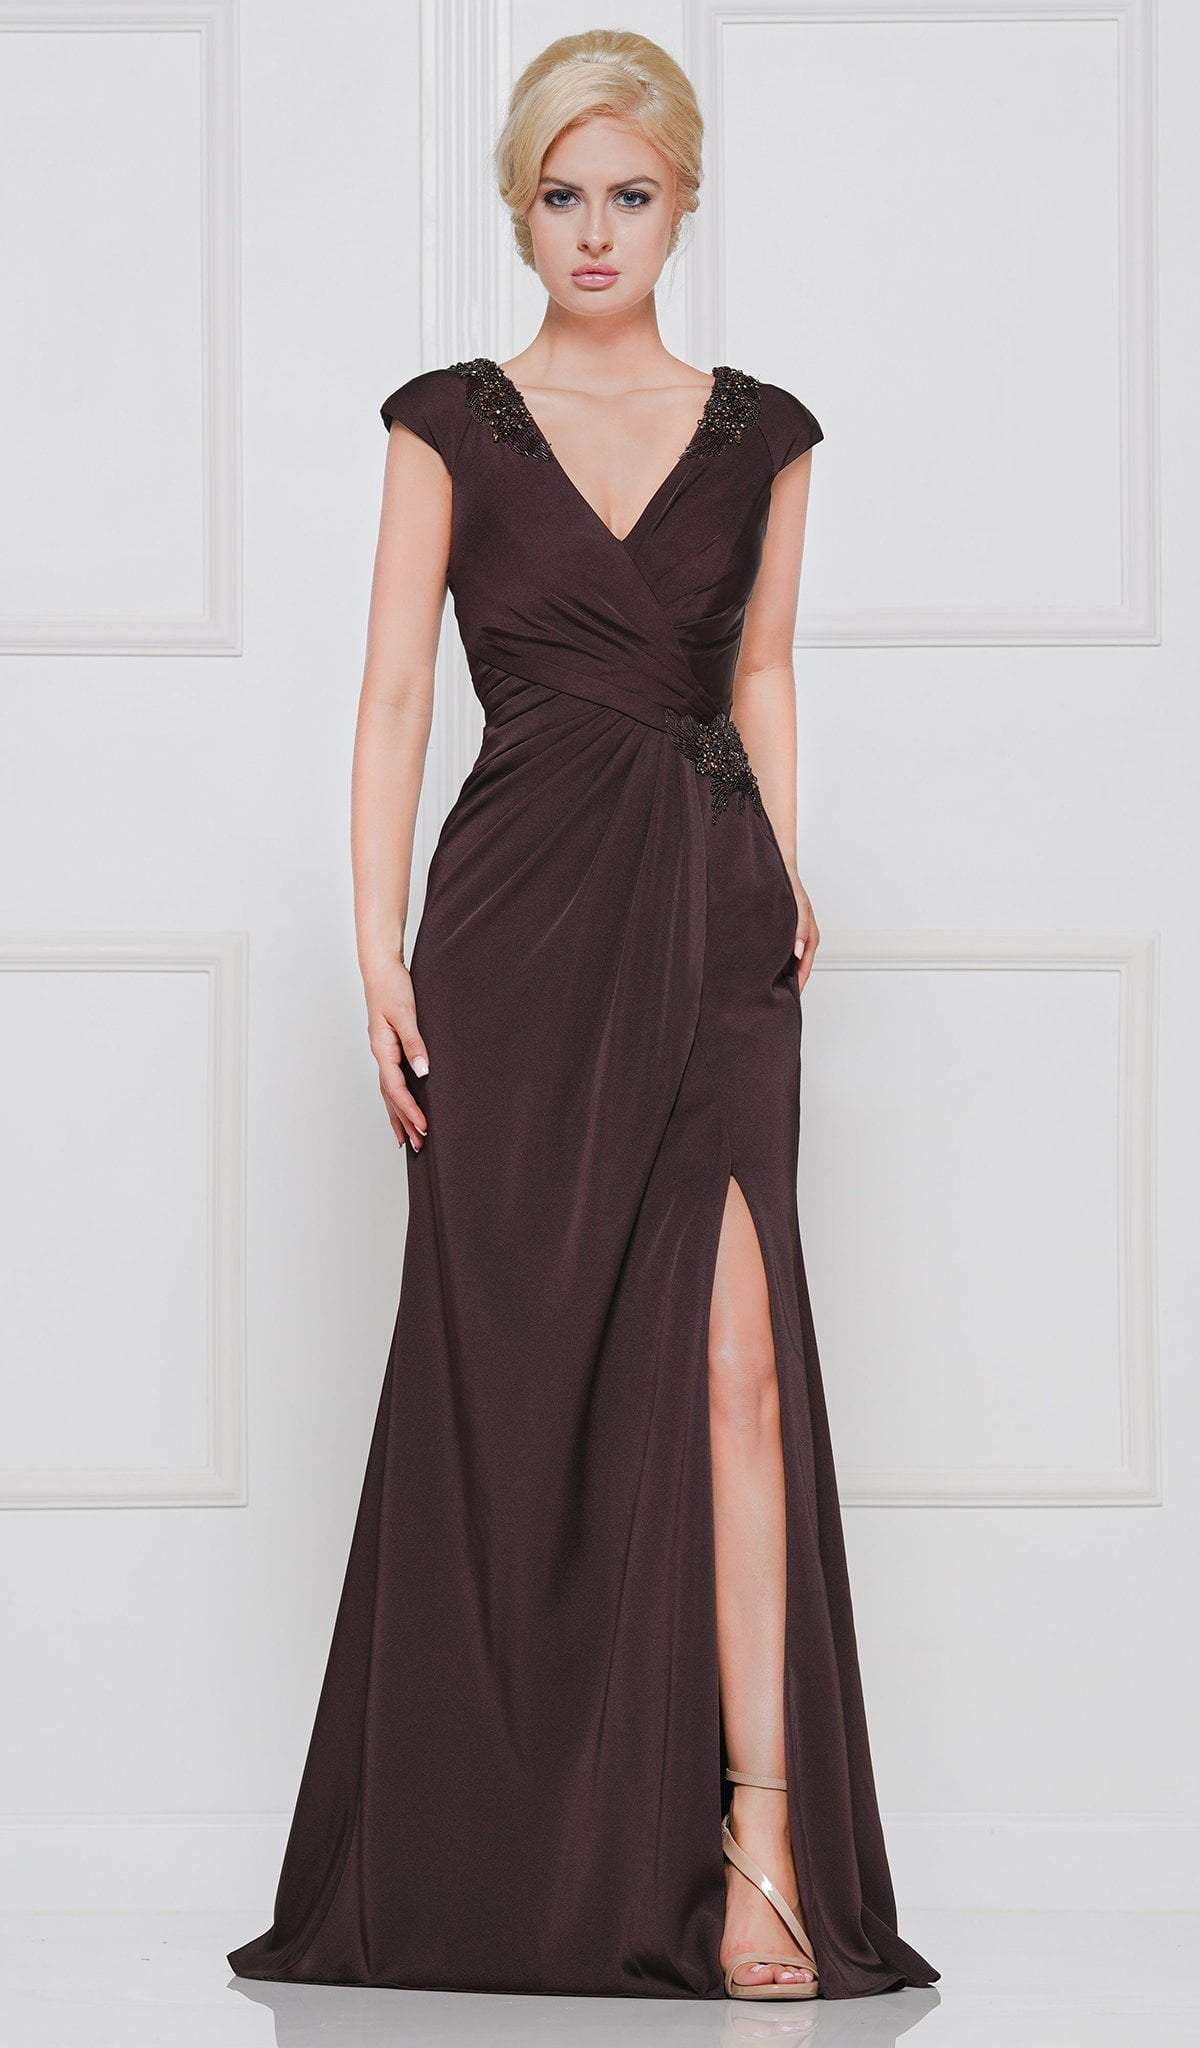 Marsoni by Colors - M252 Ornate Epaulette Surplice Bodice Long Gown Special Occasion Dress 4 / Dark Brown